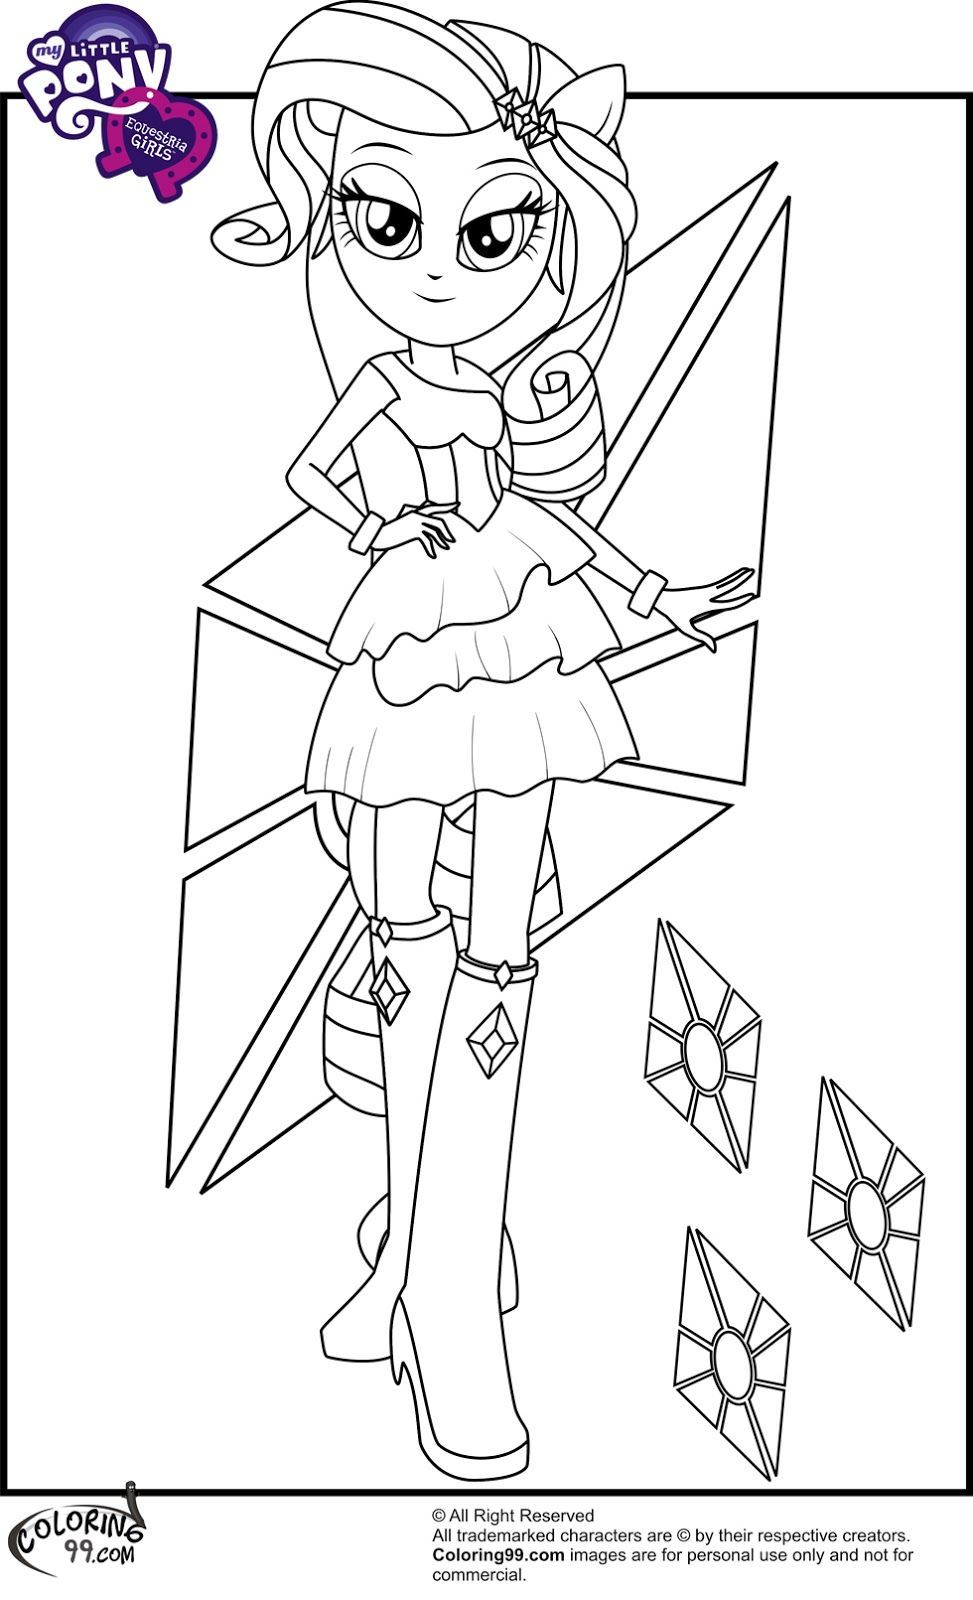 My Little Pony Equestria Girls Coloring Pages Coloring99 в ...